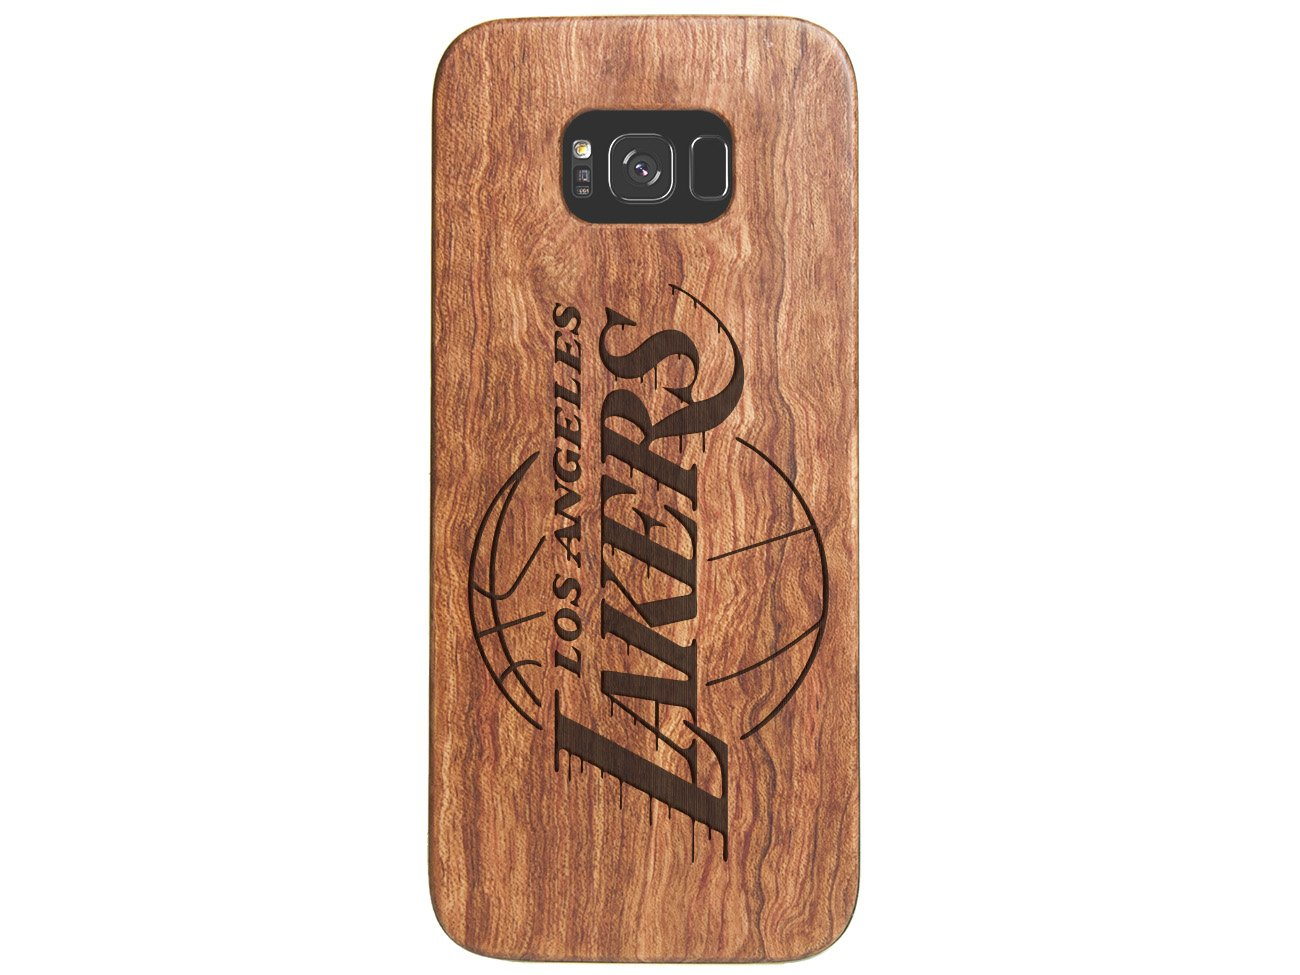 Los Angeles Lakers Galaxy S8 Case